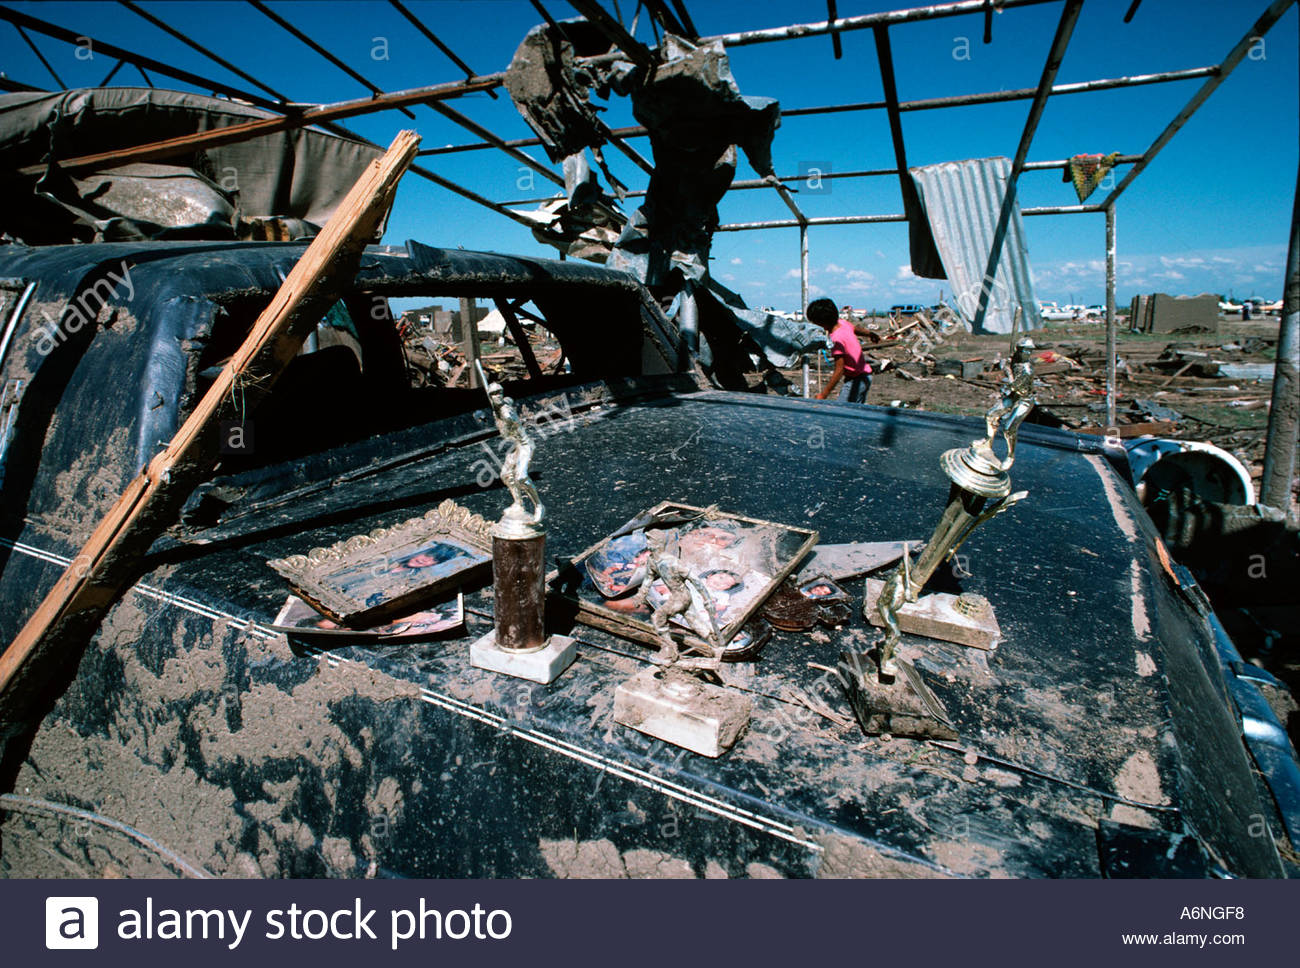 Personal items recovered from the Killer Saragosa   Texas Tornado Disaster May, 22nd 1987 - Stock Image